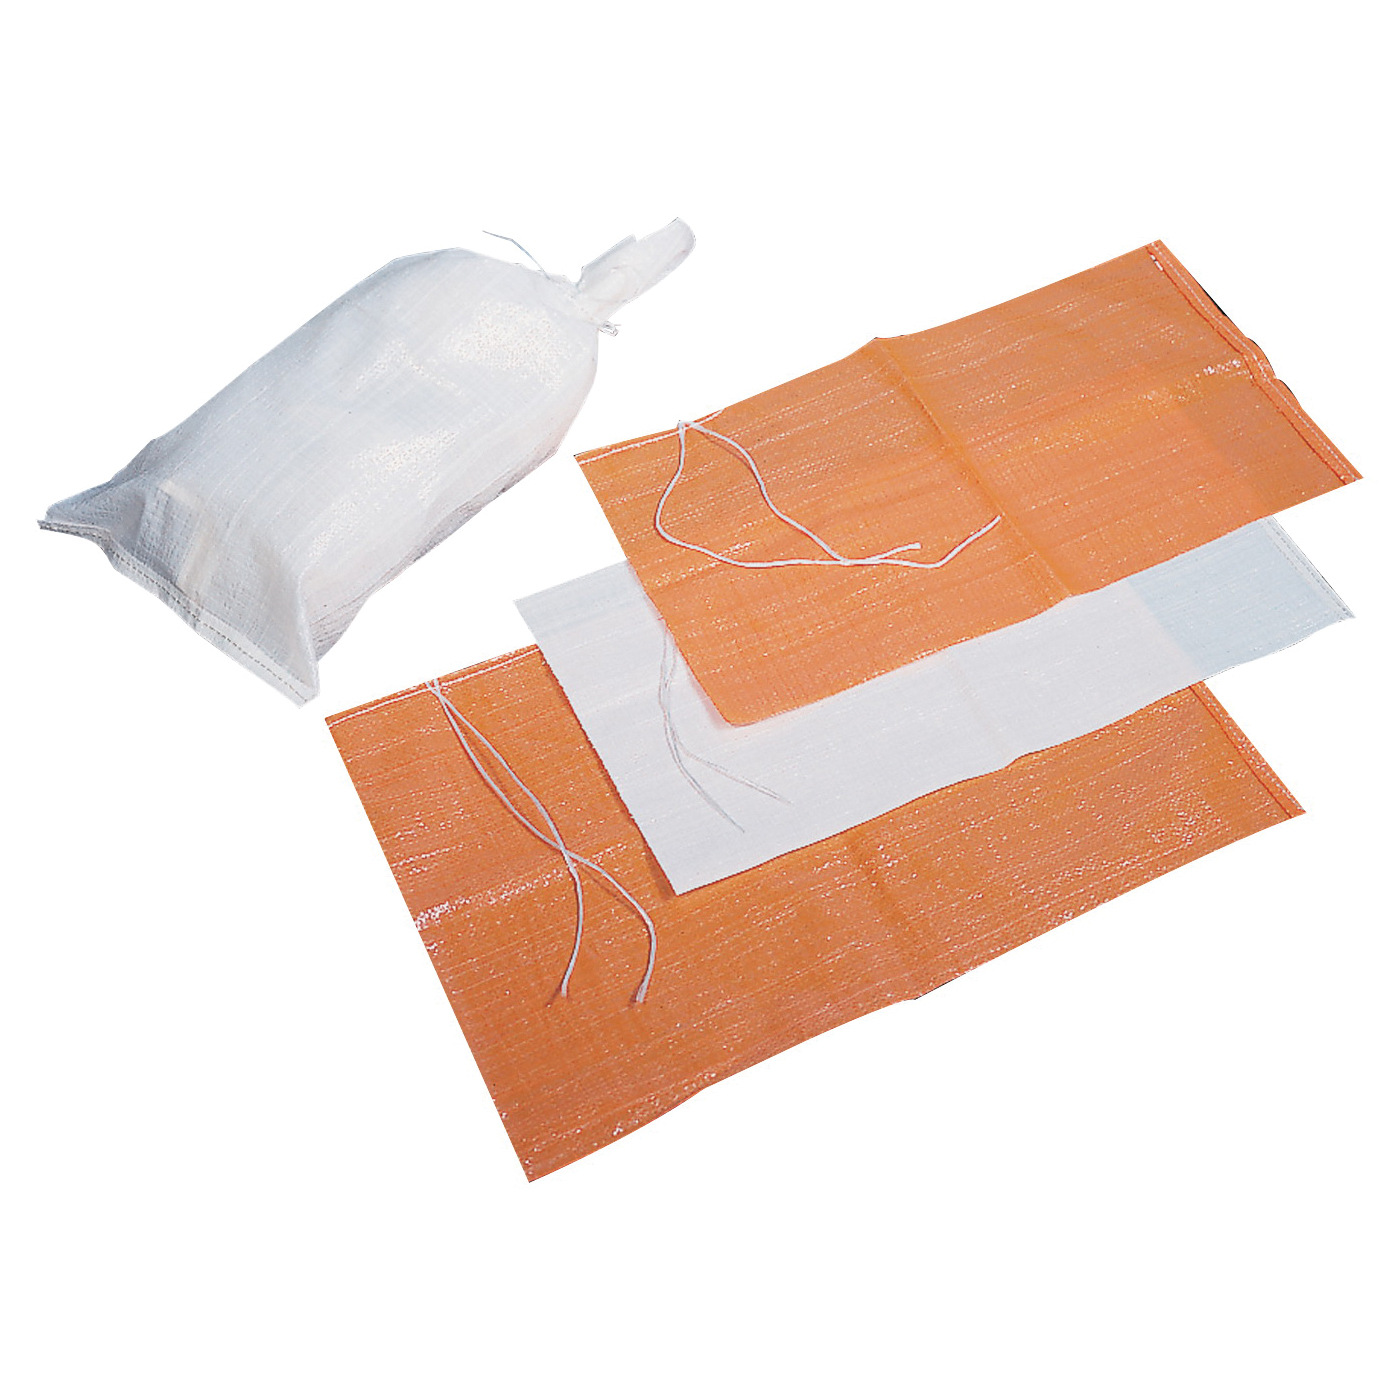 Picture of MUTUAL INDUSTRIES 14981-10-14 Fill Sand Bag, Woven Polypropylene